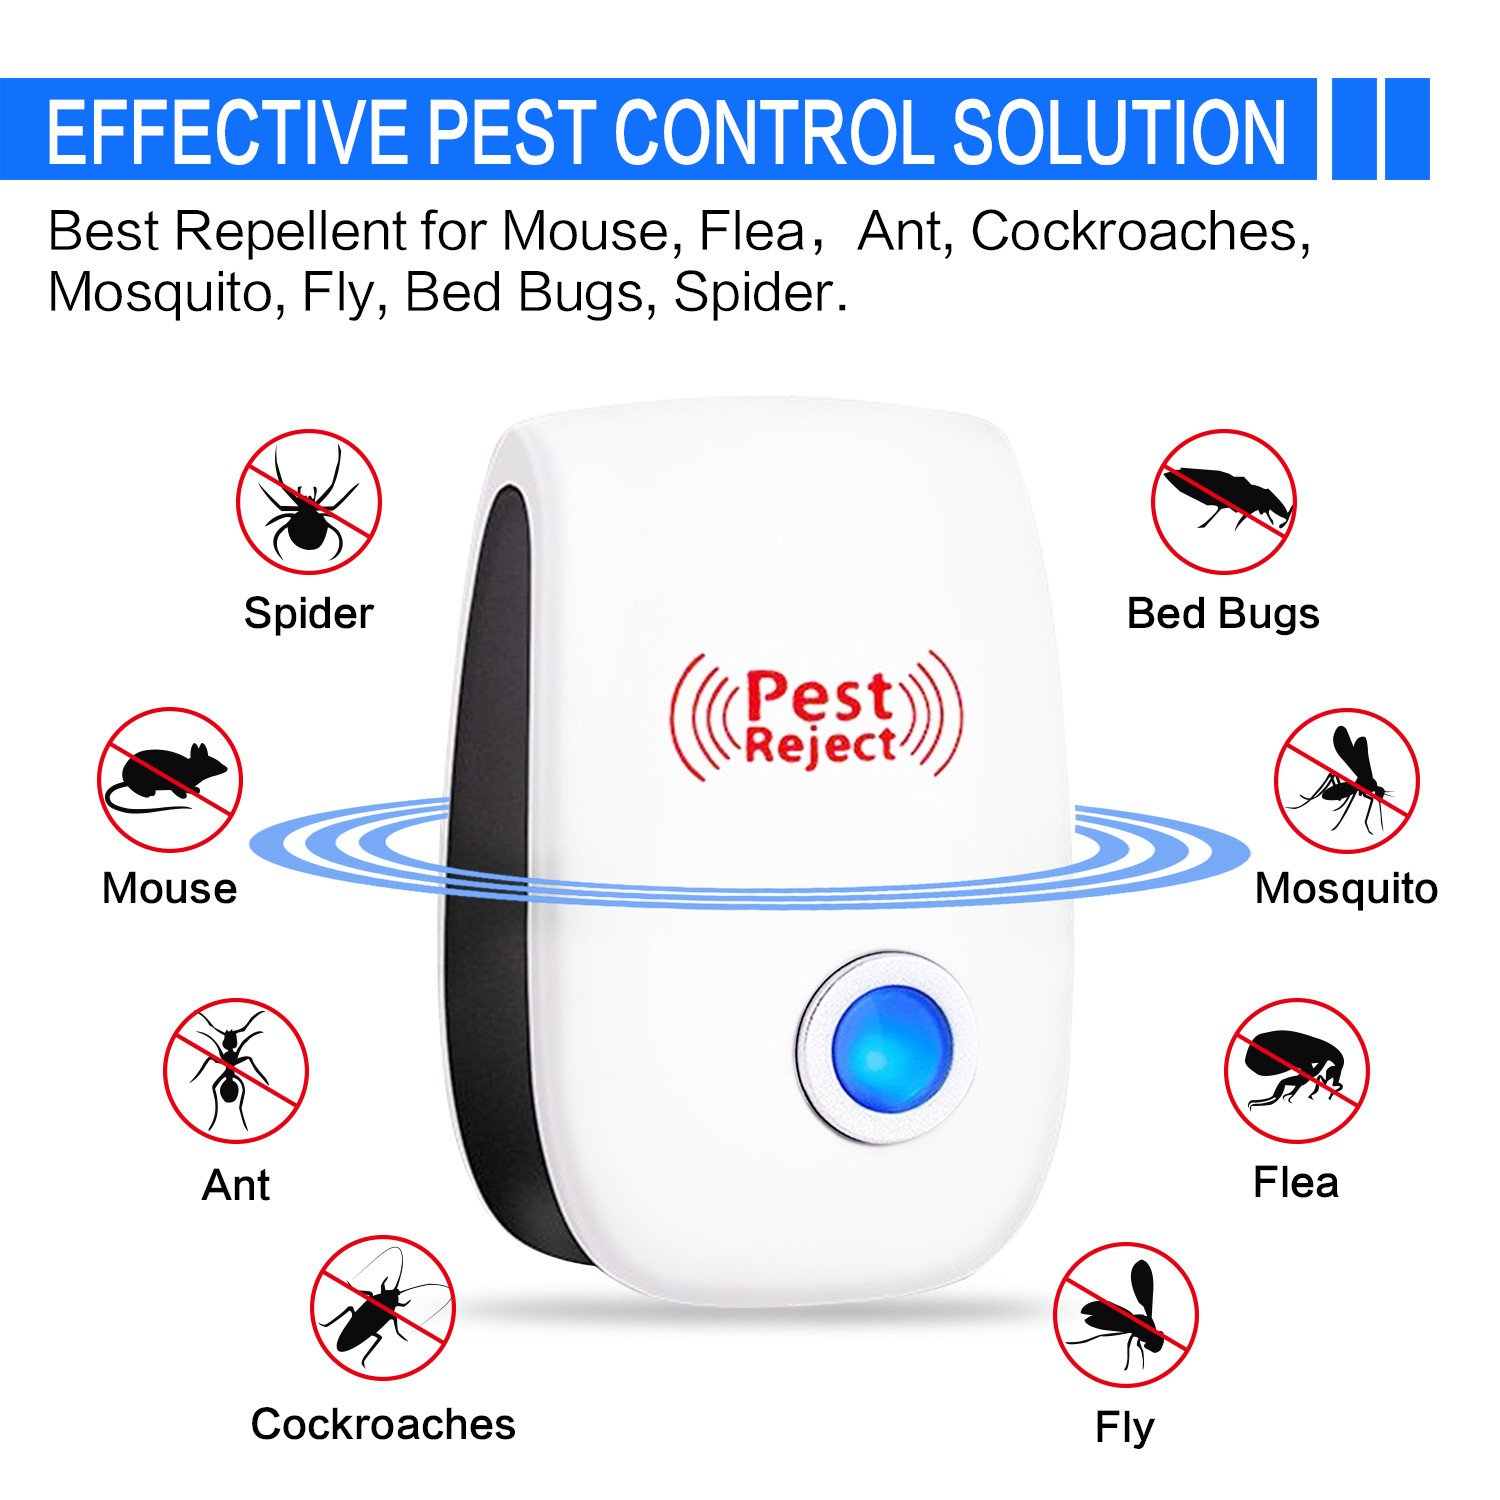 Ultrasonic Pest Repeller 4 Pack 2018 Upgraded 100 Mosquito Repellent Circuitbest Repellentindoor Control Indoor Plug In For Mice Cockroach Spider Ant Bug Insect Home Kitchen